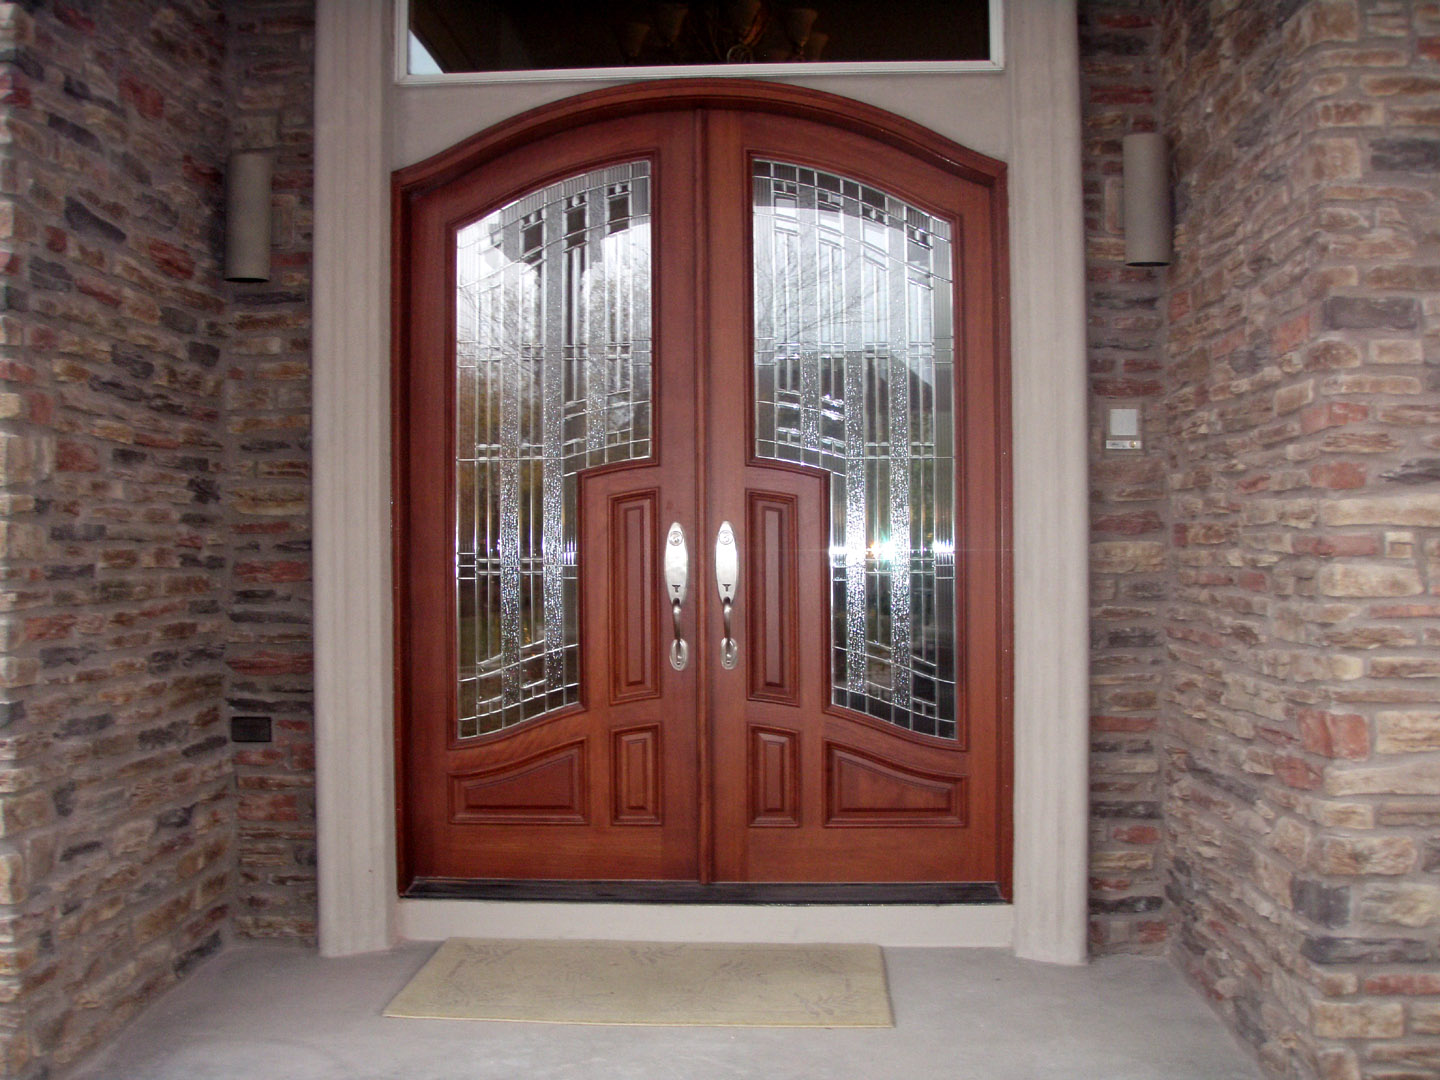 1080 #693F38 ROUND TOP DOORS – ARCHED TOP DOORS – RADIUS DOORS FOR   IN  image Arched Wood Entry Doors 40831440